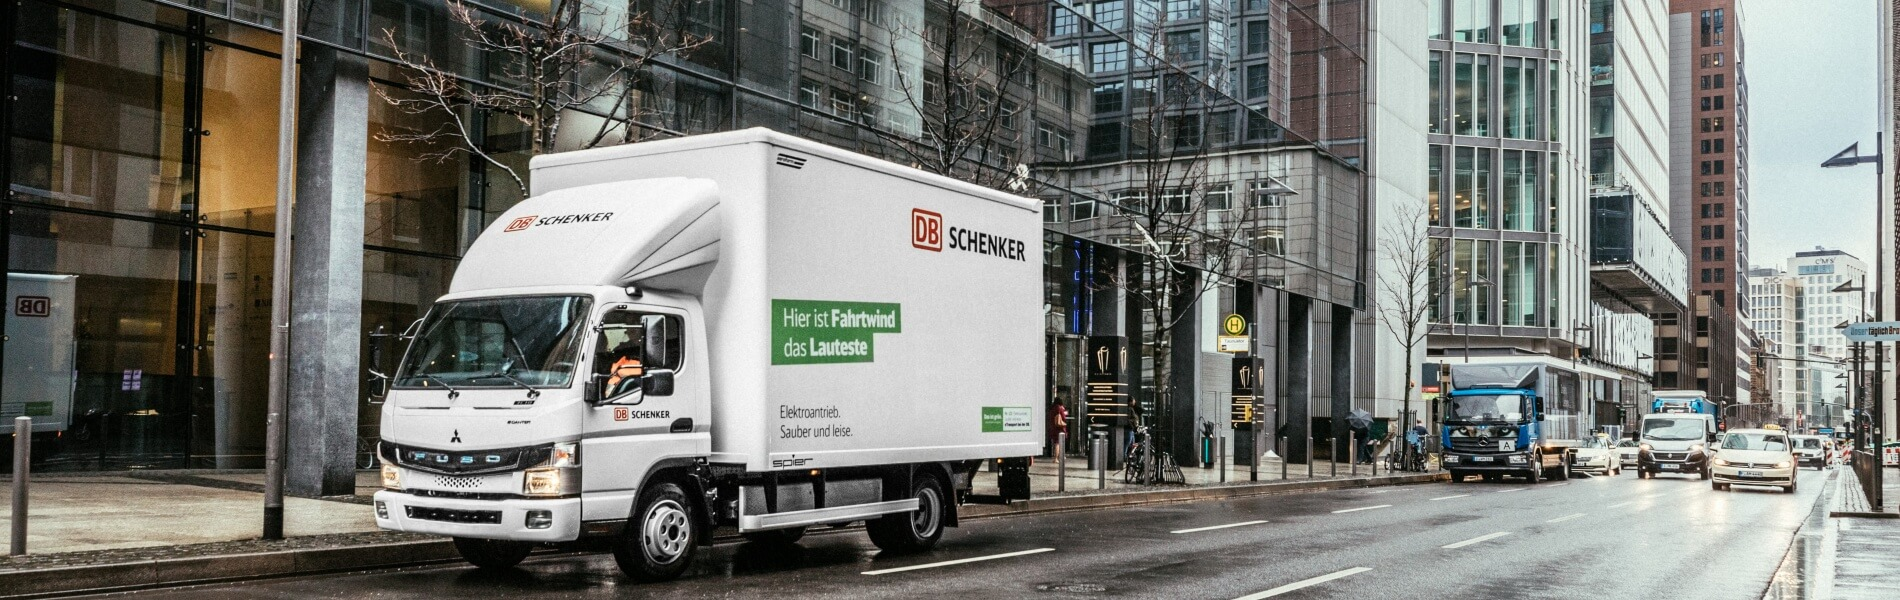 DB Schenker is testing electric delivery in several European cities